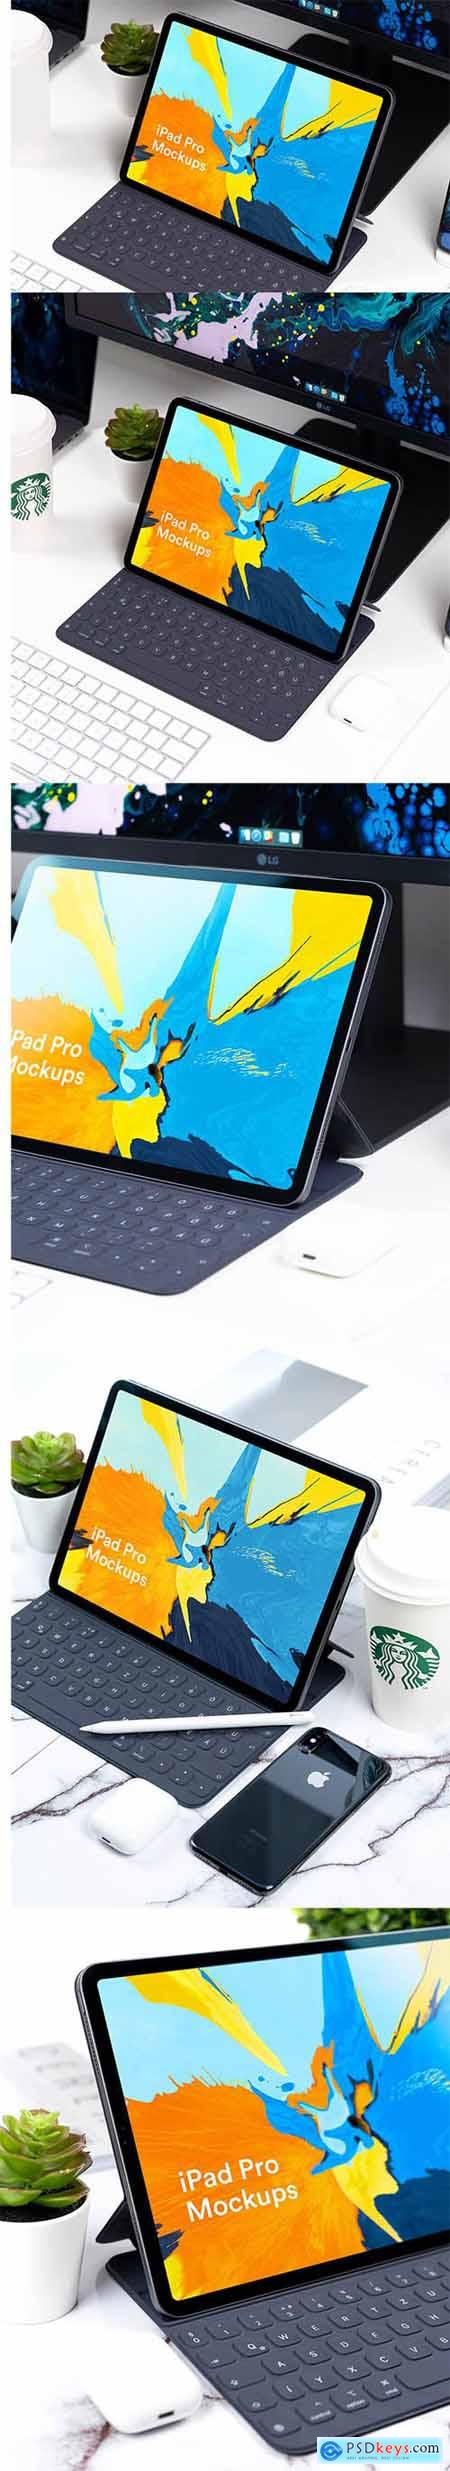 iPad Pro 2018 Mockup Black v1 workspace